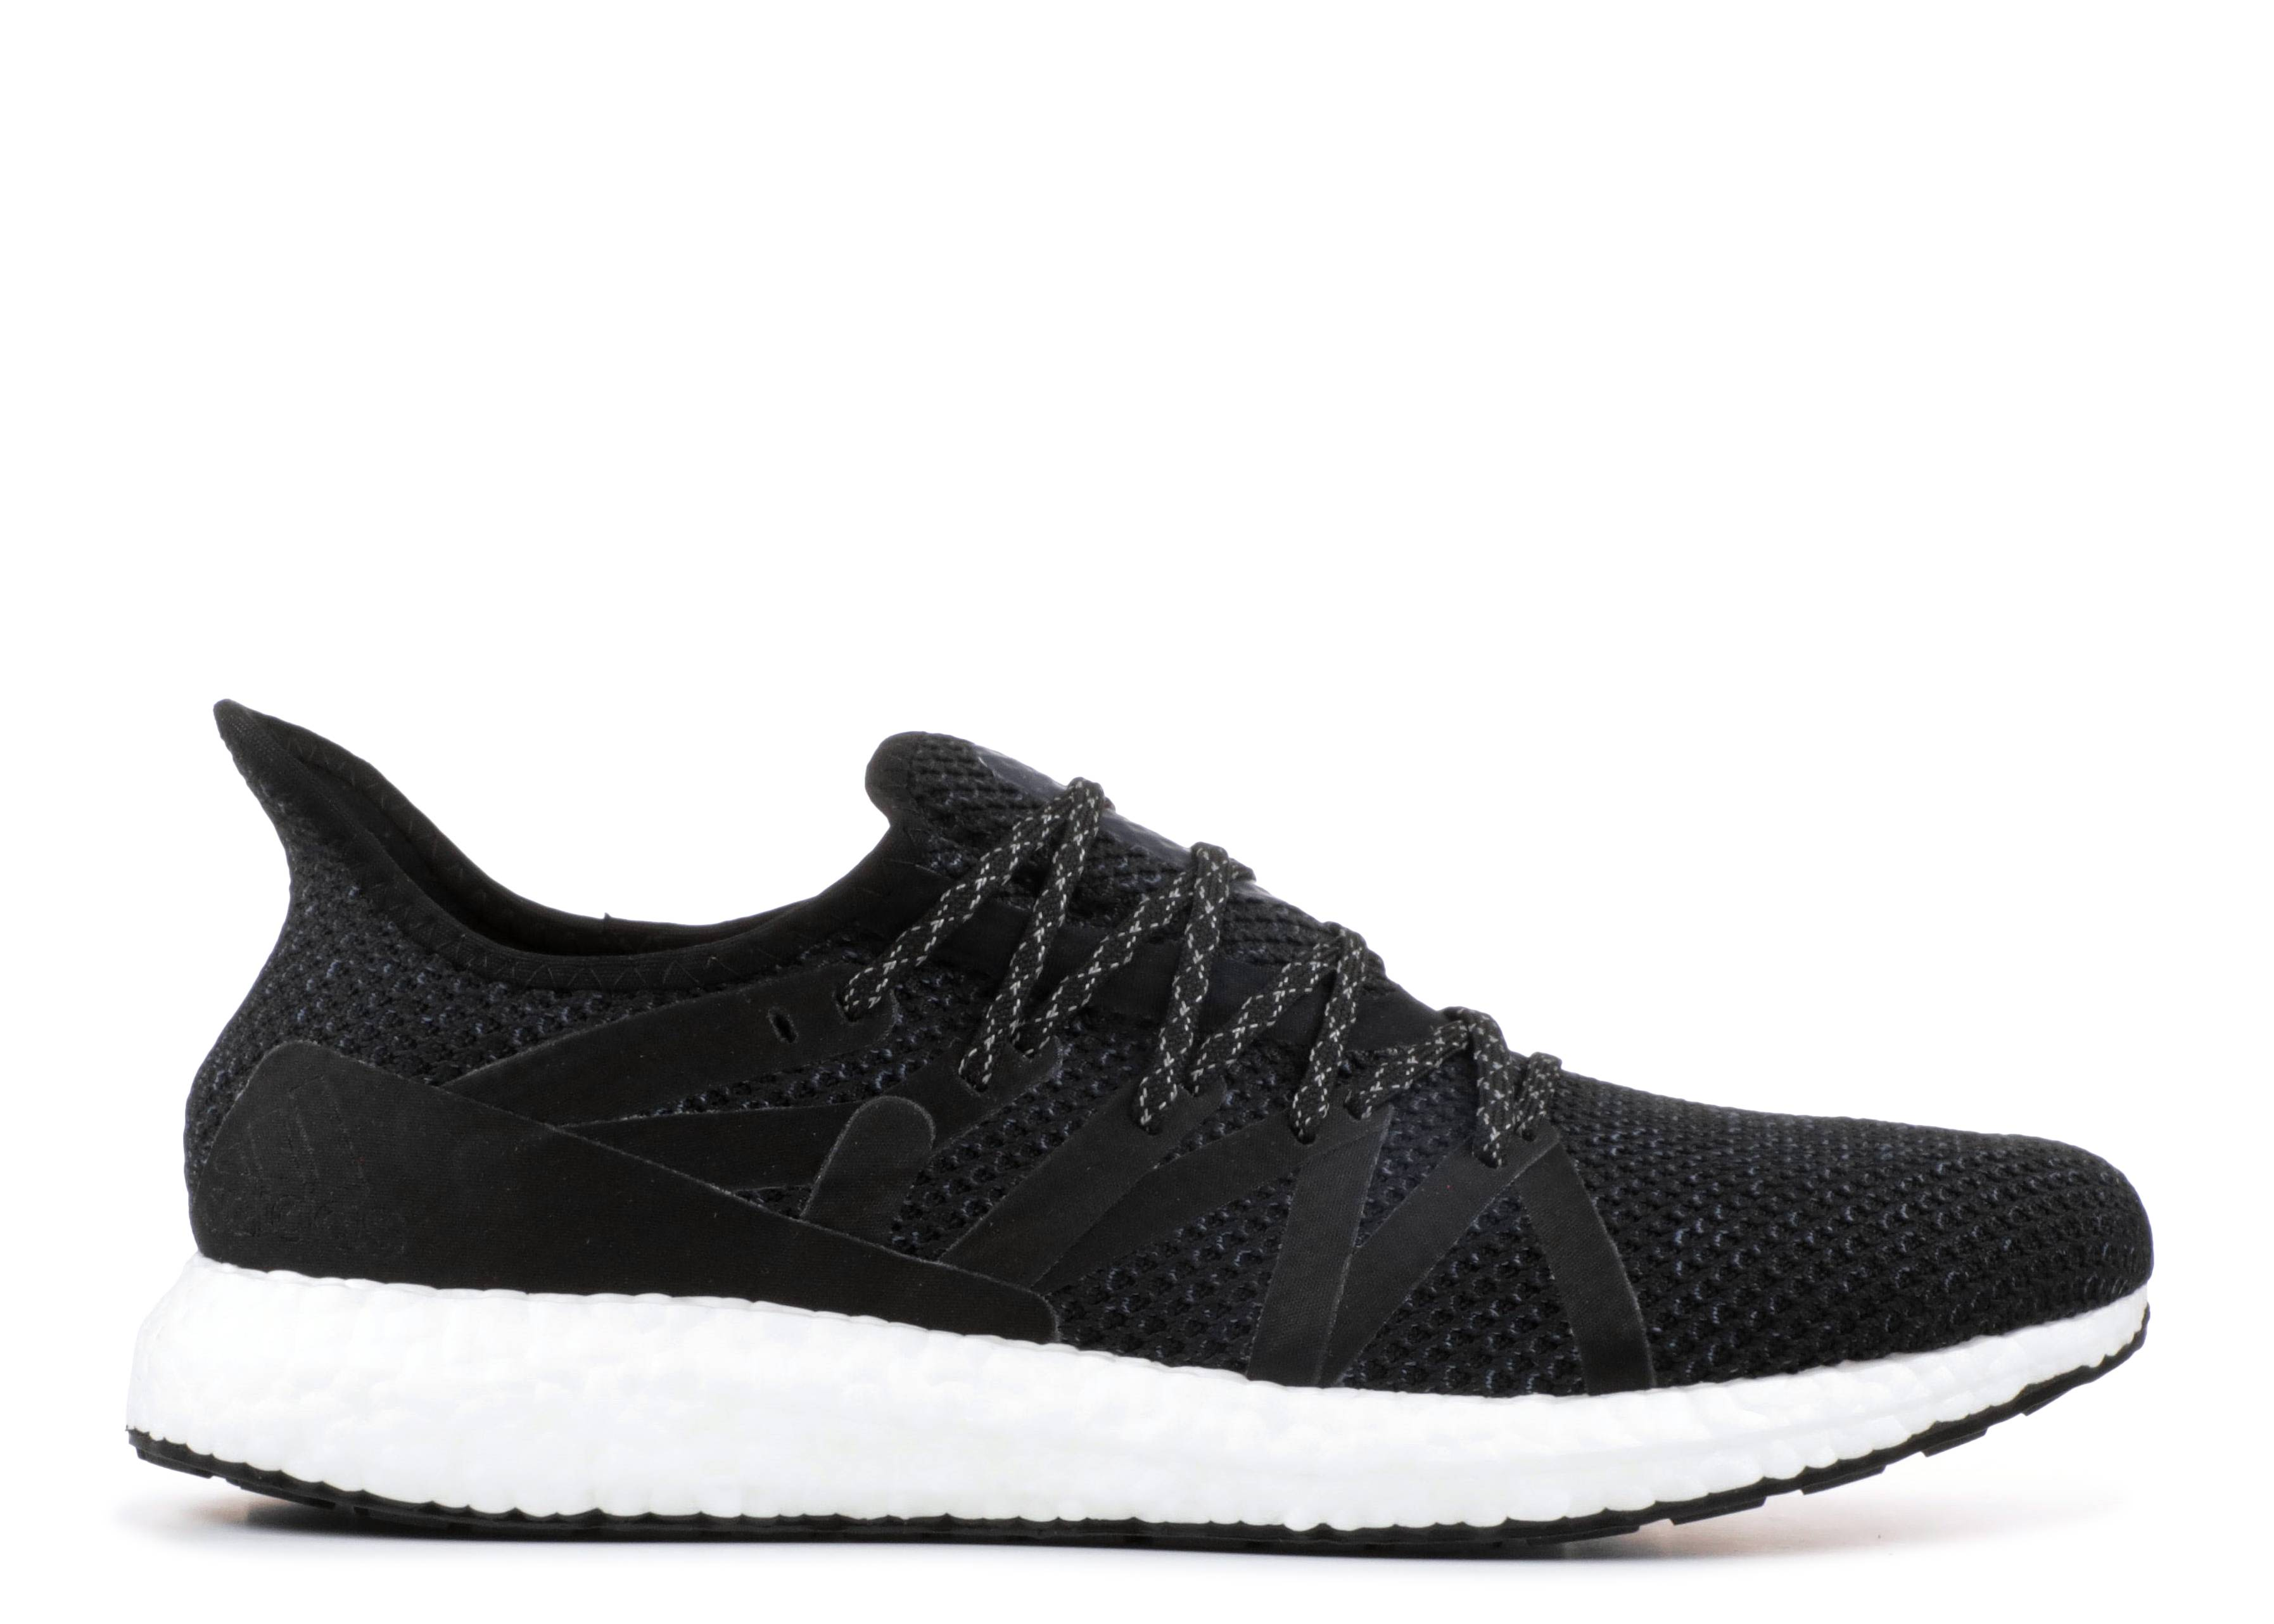 sports shoes aae1f a87b4 AM4NYC - Adidas - D97214 - core blacktech inkrunning white  Flight Club